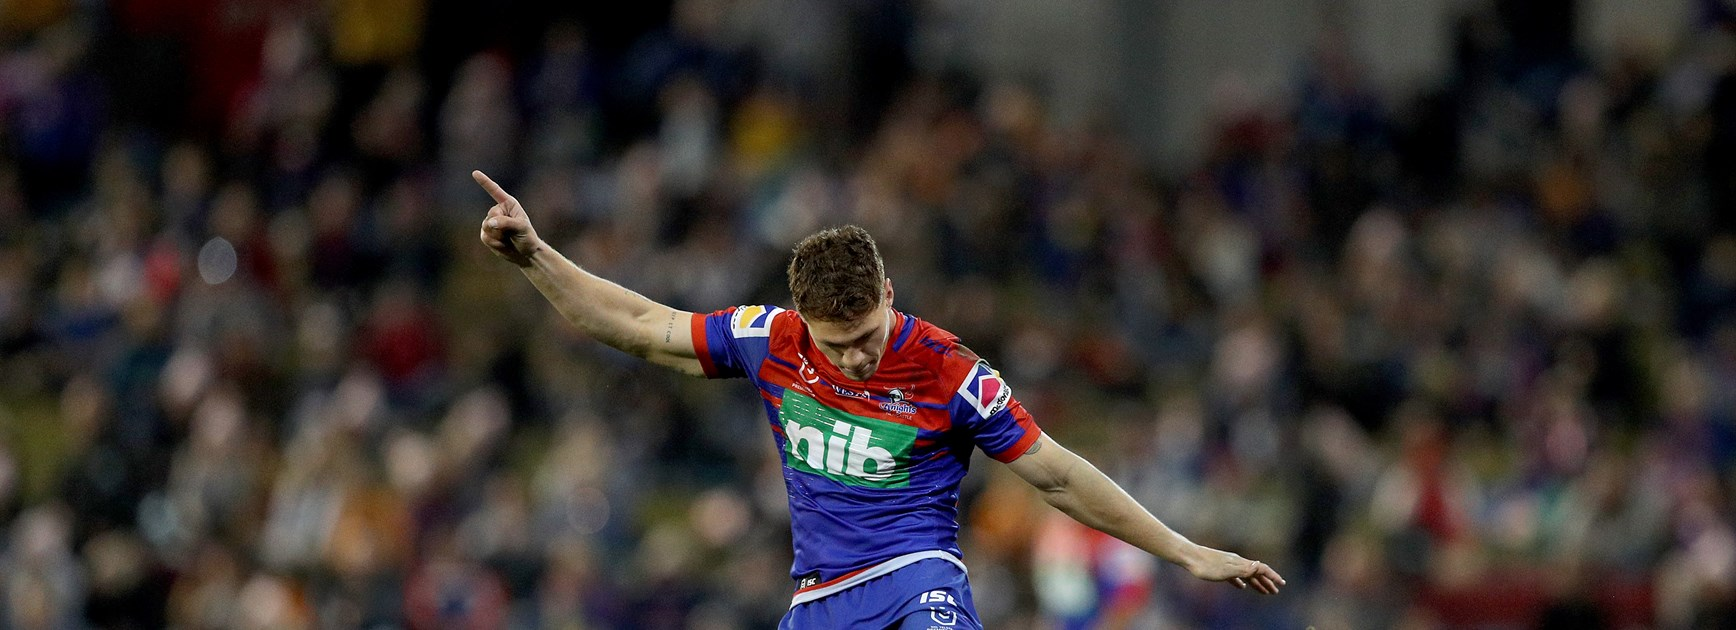 Season Review: Kalyn Ponga